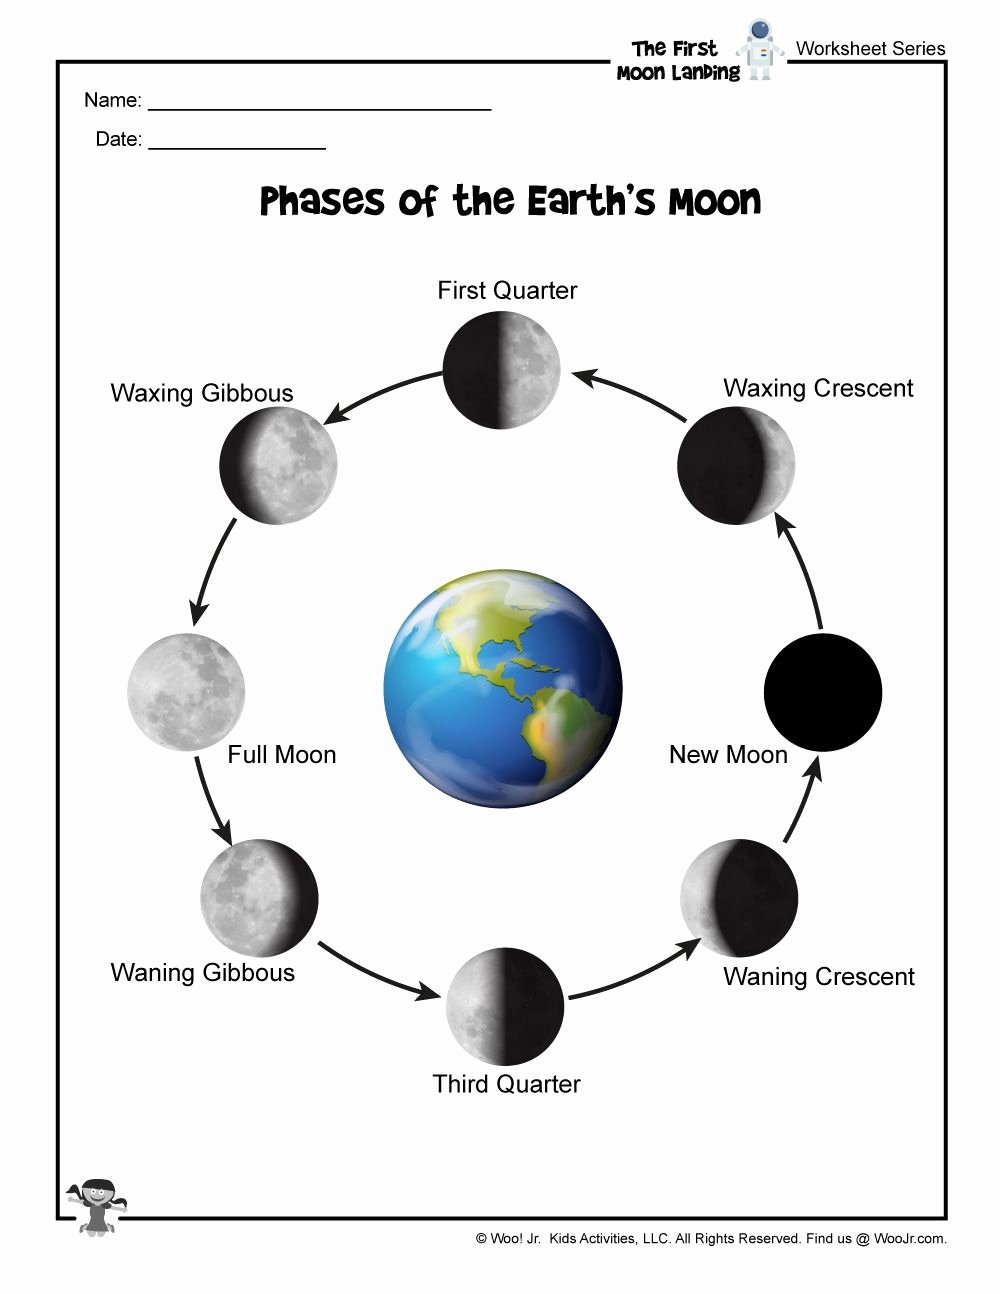 Phases Of the Moon Worksheet Best Of Moon Phases In order Reference Worksheet